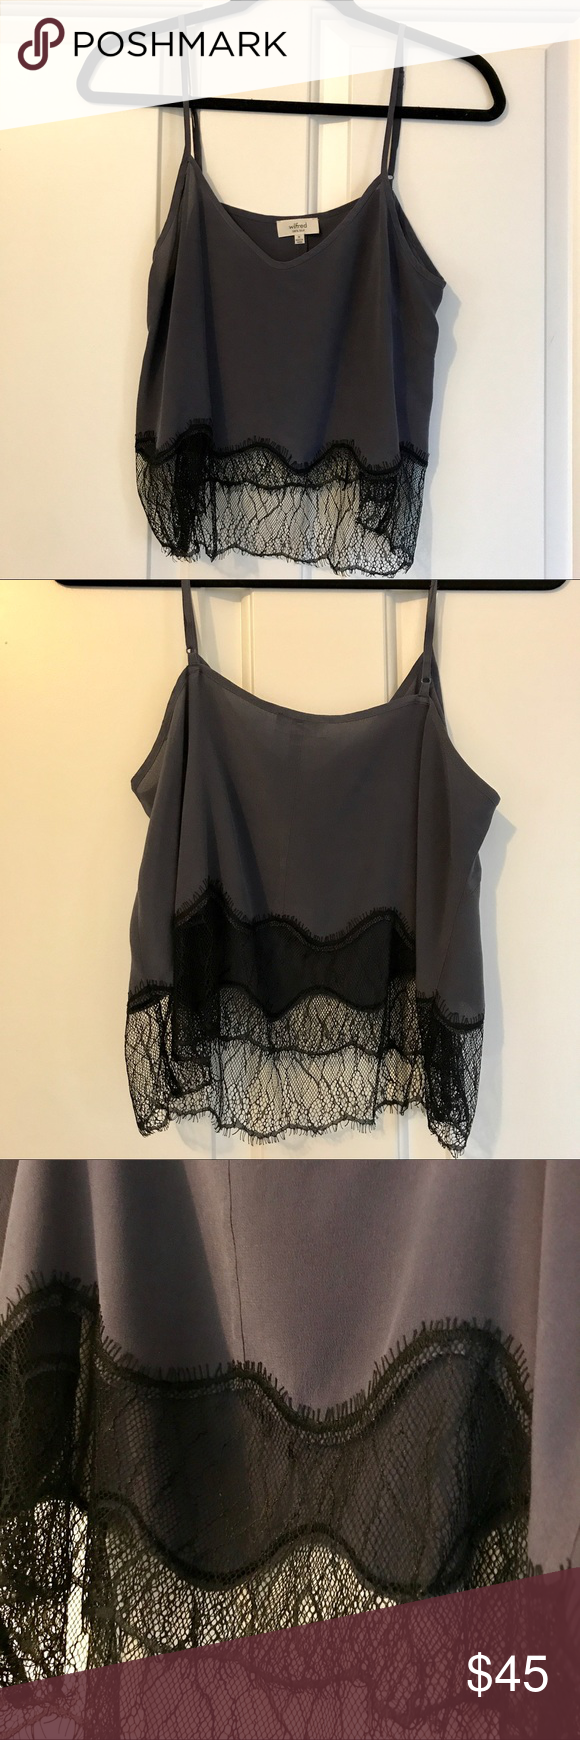 29735ec07f30e9 Aritzia Wilfred Silk Lace Crop Top Tank Made by Wilfred - this silk and lace  crop top is amazing! The top is a muted navy and the lace is black.